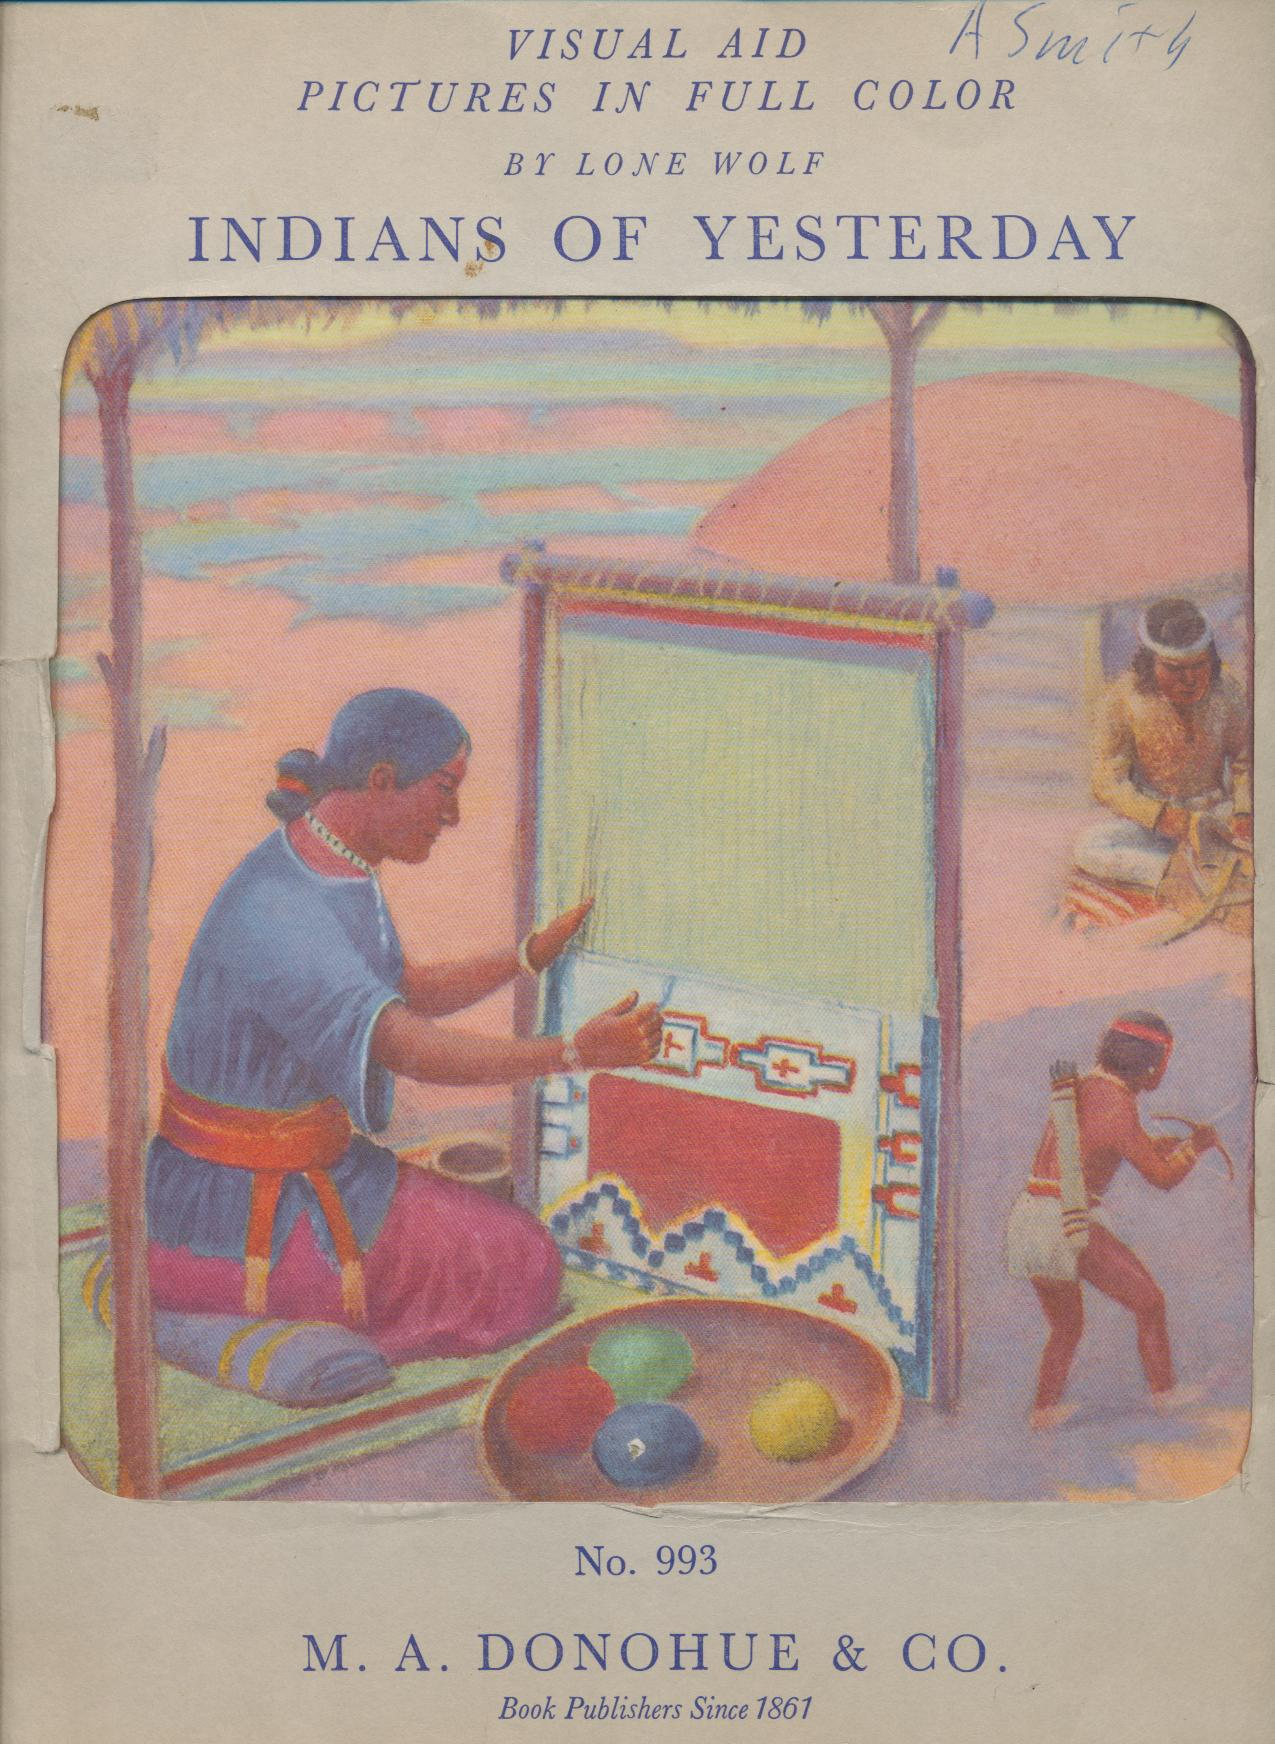 1940 Set Of Indian Prints Signed By Artist Lone Wolf